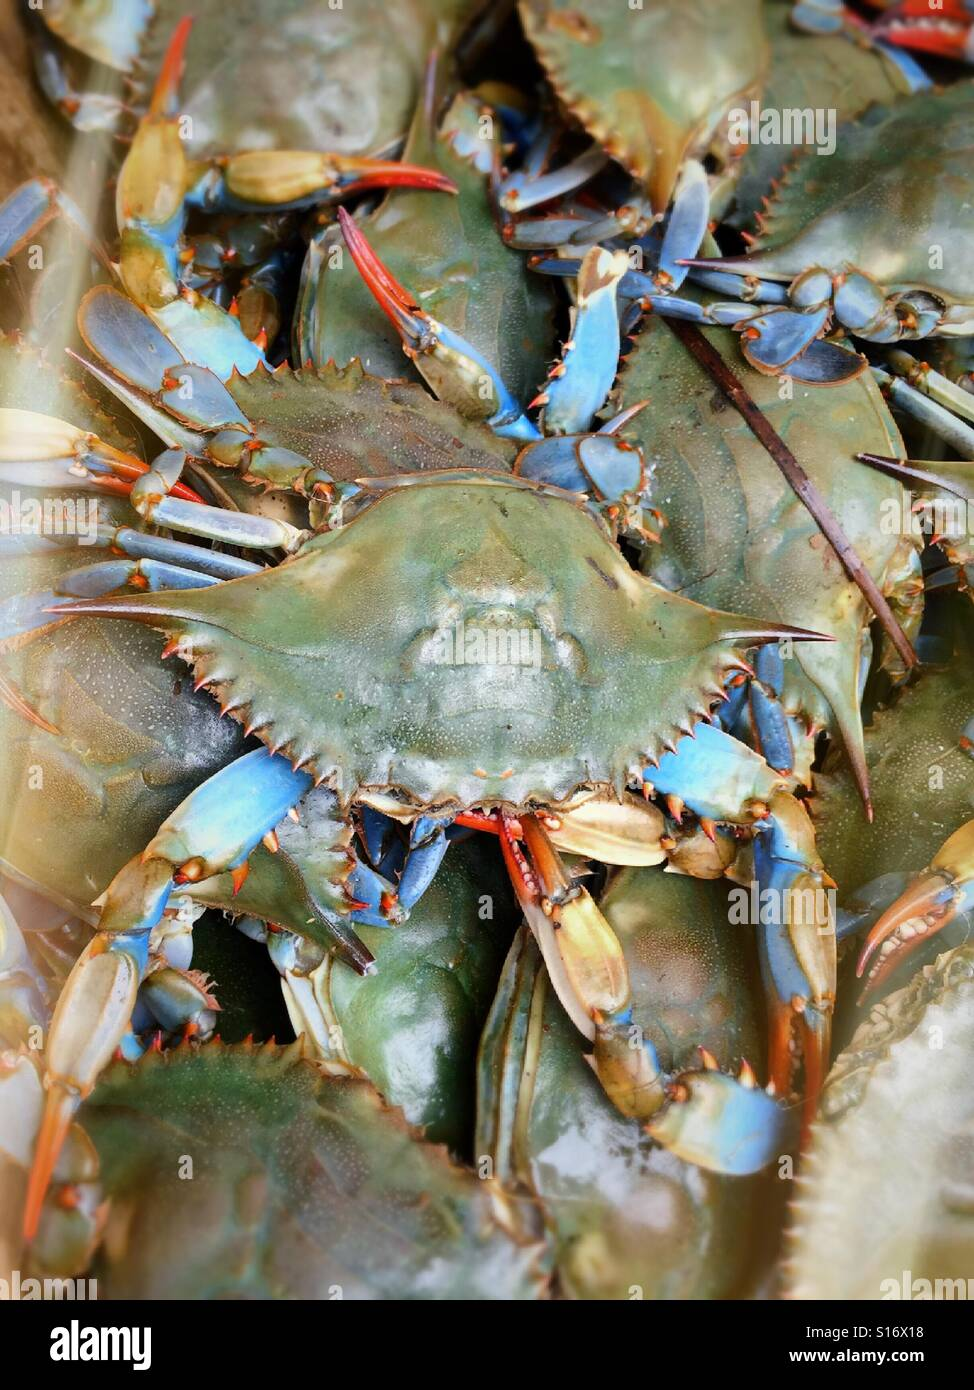 Live Bluepoint crabs for sale in Chinatown NYC - Stock Image